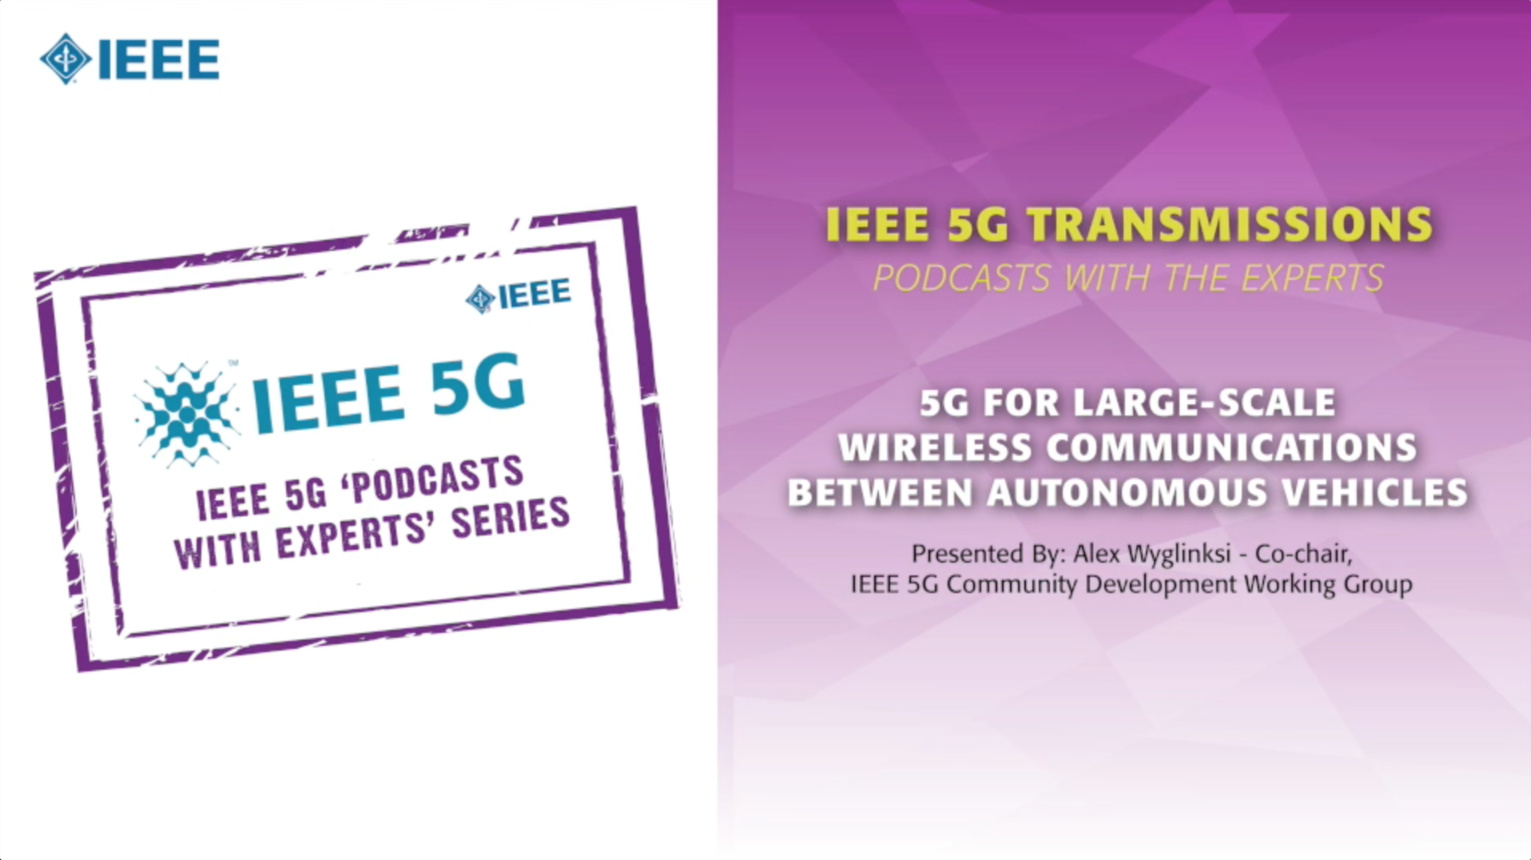 IEEE 5G Podcast with the Experts: 5G for large-scale wireless communications between autonomous vehicles